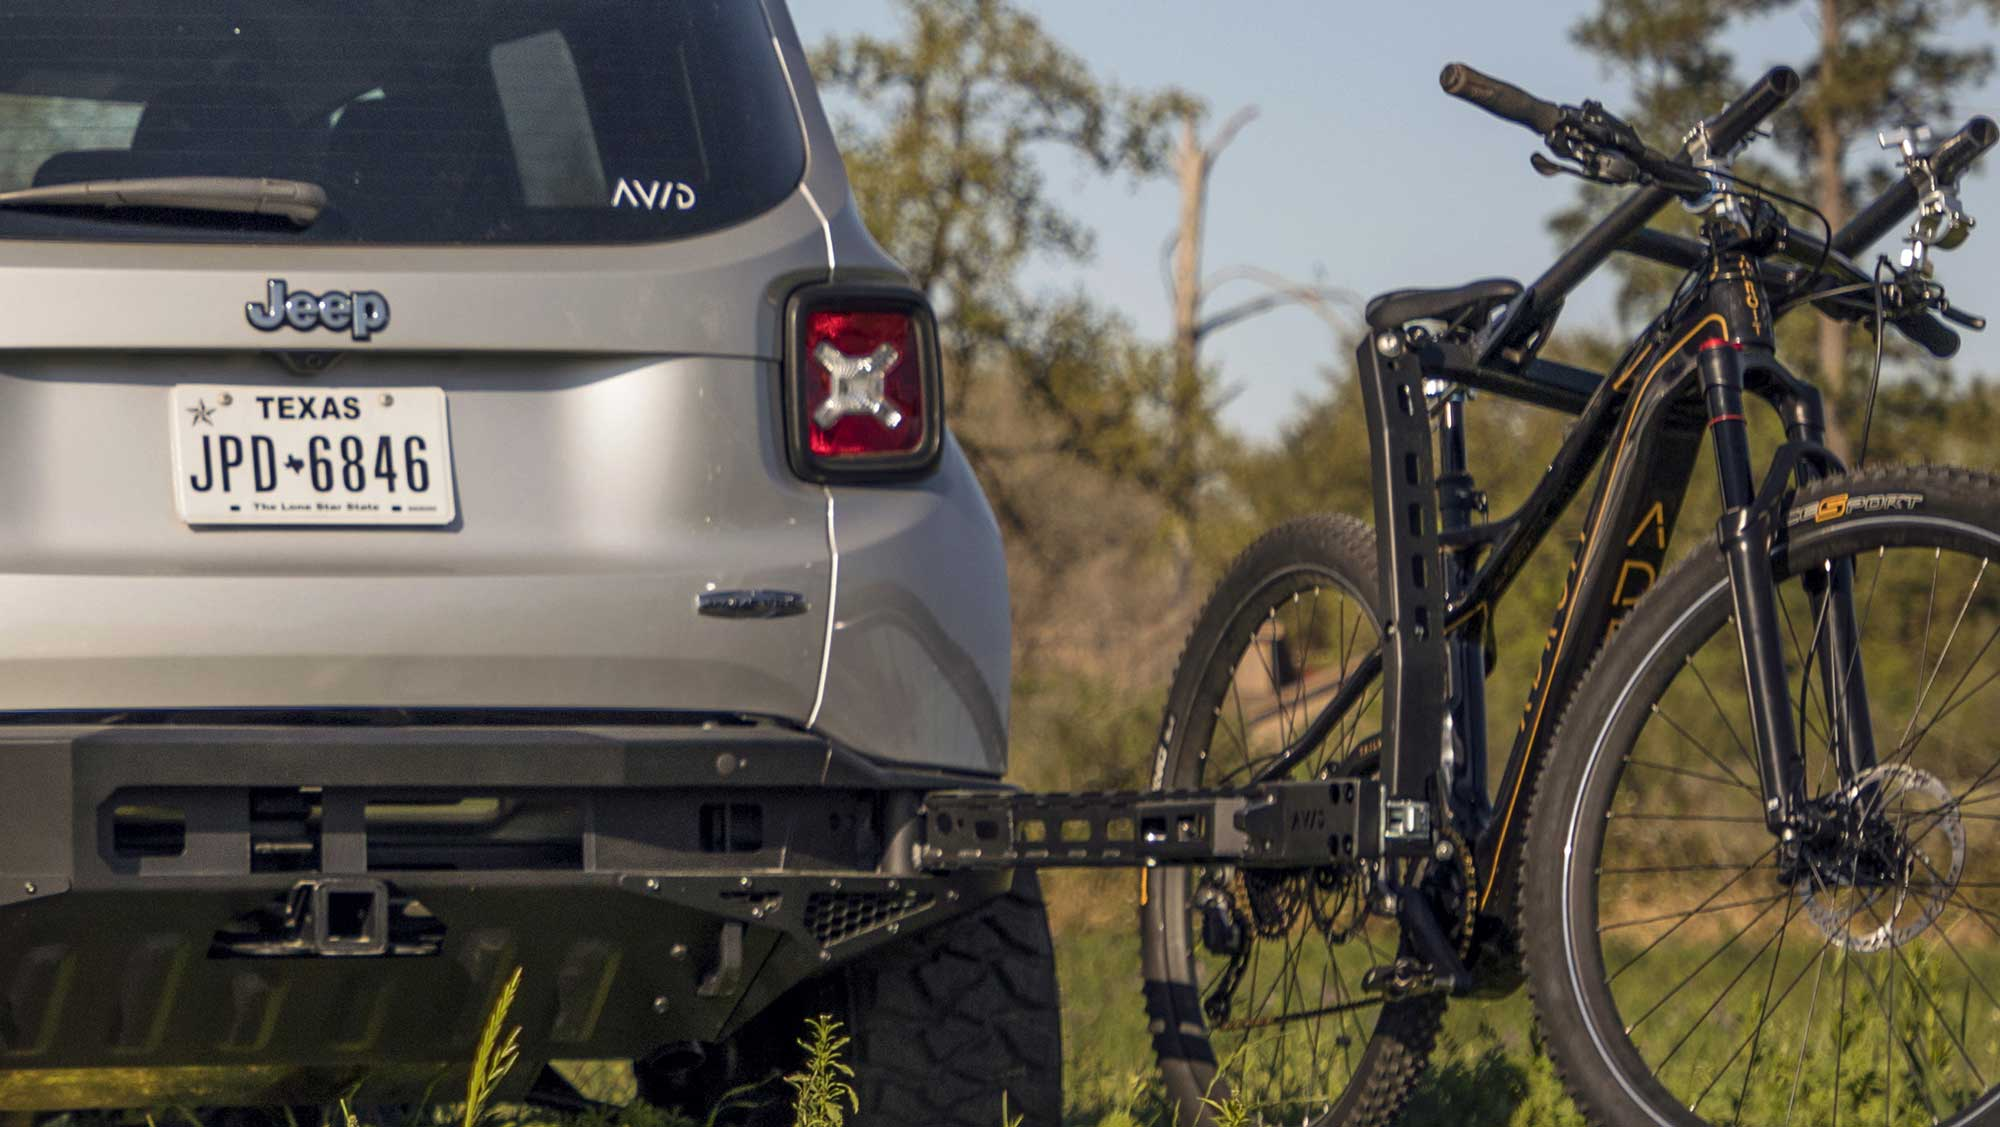 Bike Rack For Jeep Renegade >> Avid Essentials' fully retractable bike rack hides in the rear bumper - Bikerumor